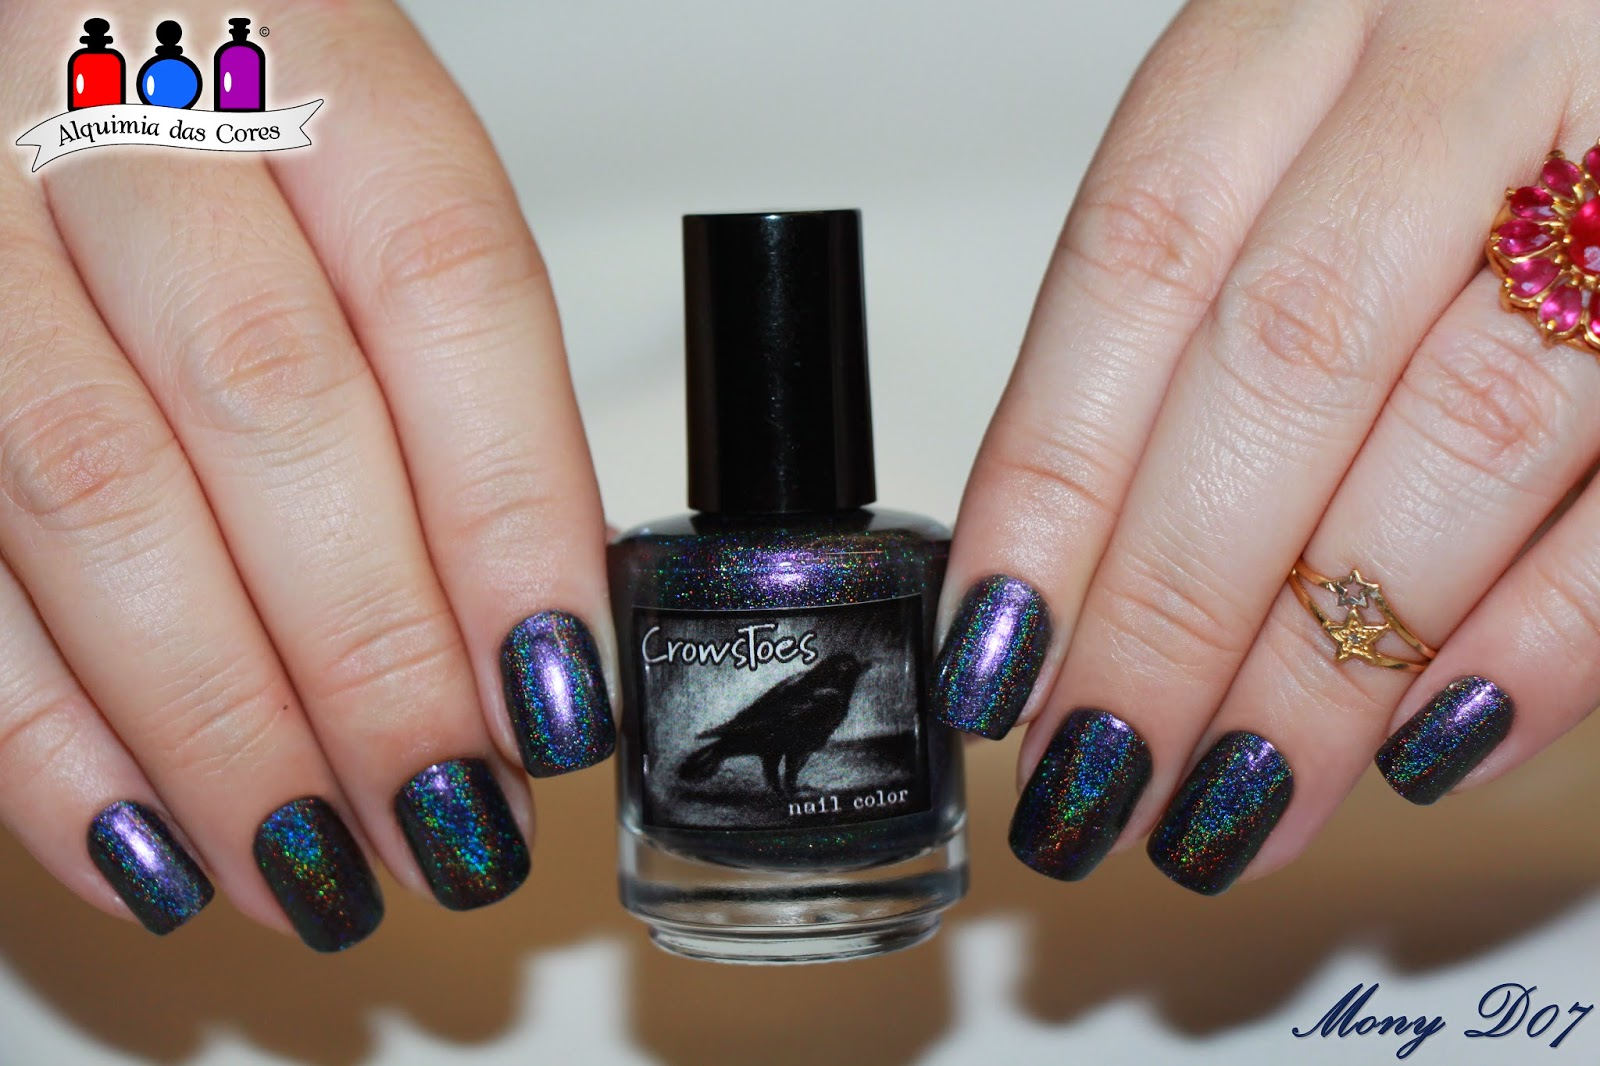 Crowstoes, One Trick Pony, multichrome, esmalte, holográphic, holográfico, SimoneD07, MonyD07, Roxo, Azul, Grafite, Indie